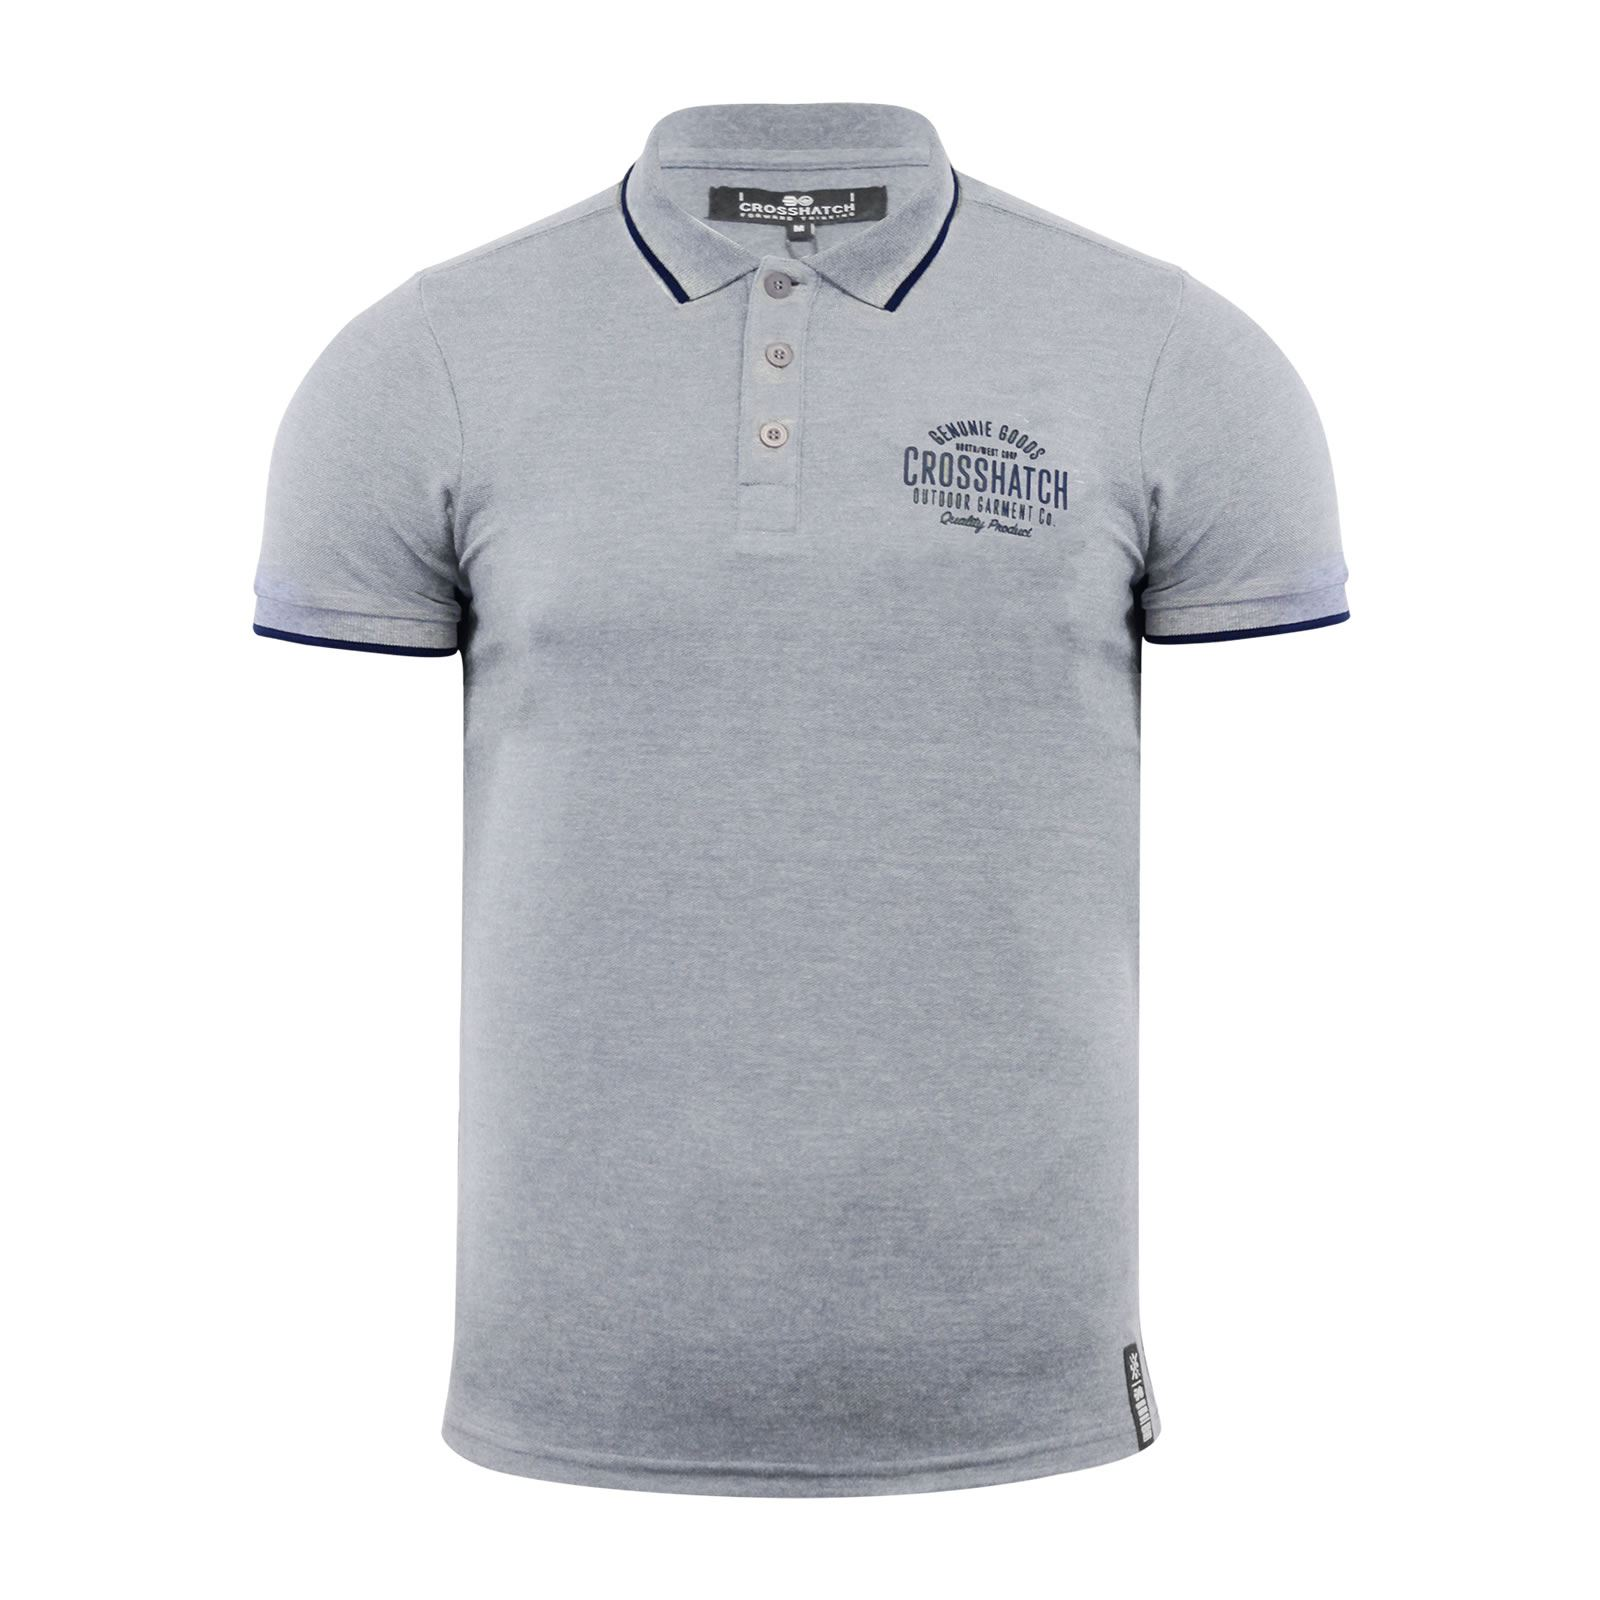 Crosshatch-Mens-Polo-T-Shirt-Pique-Polo-Cotton-Collared-Short-Sleeve-T-Shirt thumbnail 80